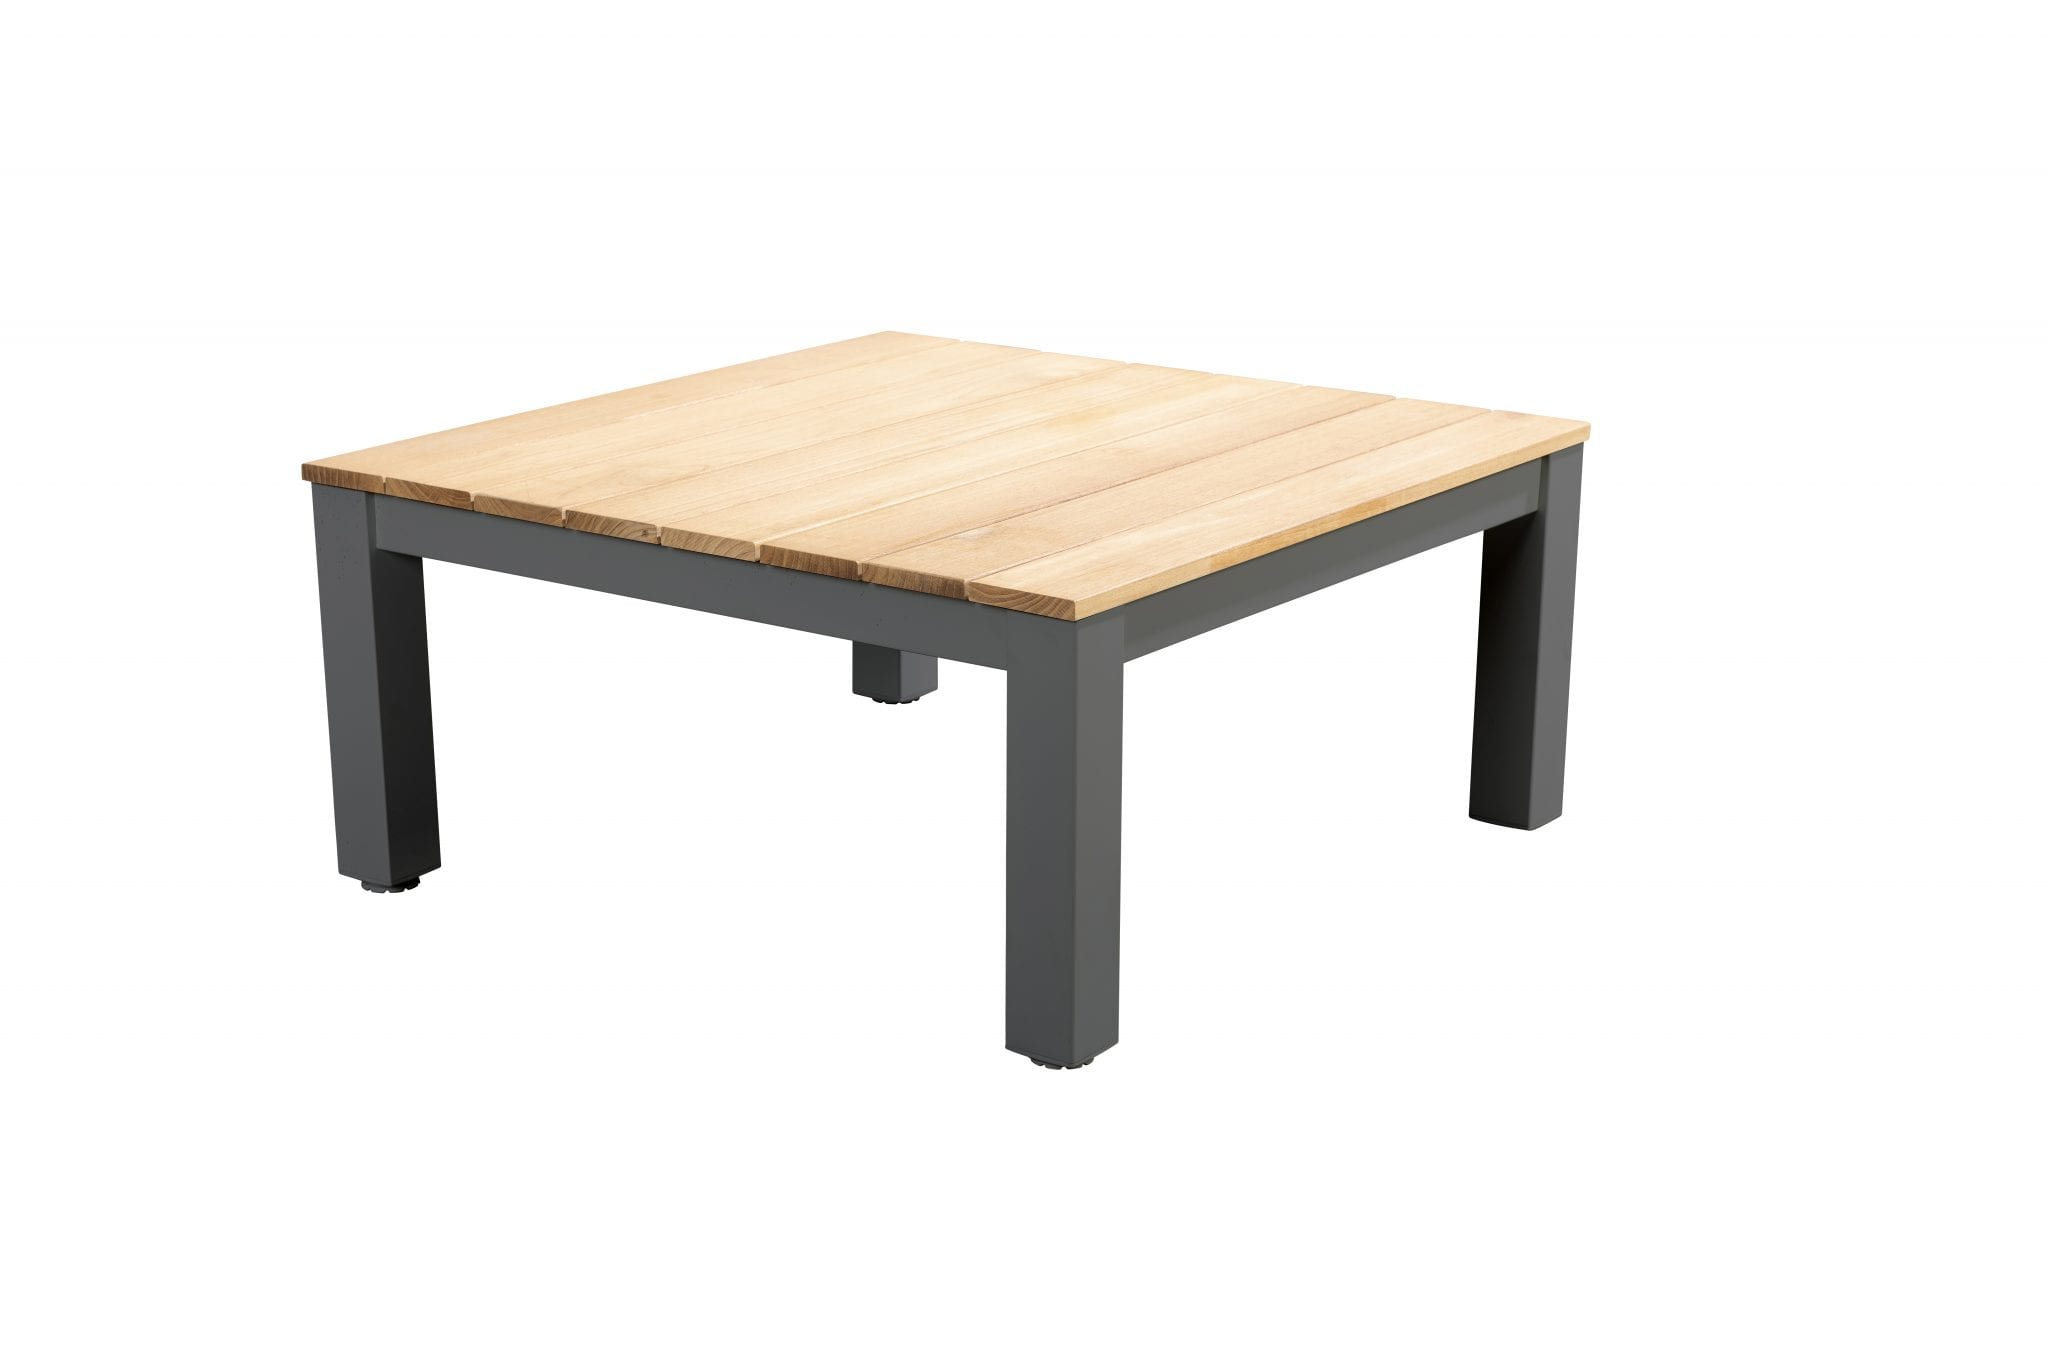 Midori 75x75 coffee table - dark grey | Yoi Furniture